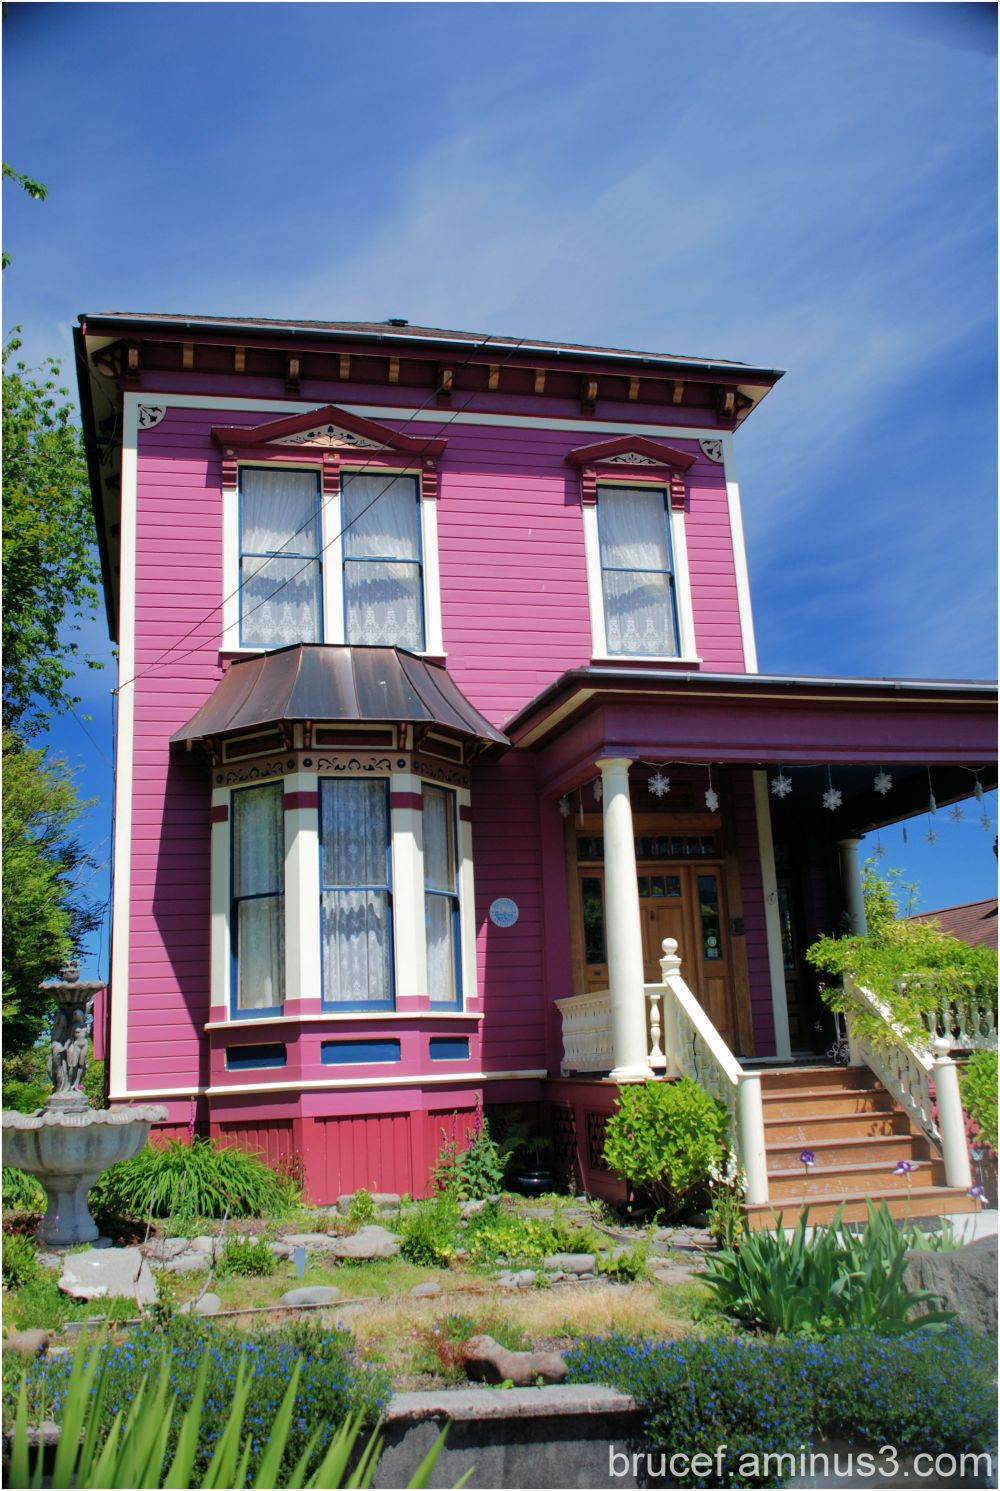 Historic Purple Home in Astoria Oregon 1 of 2